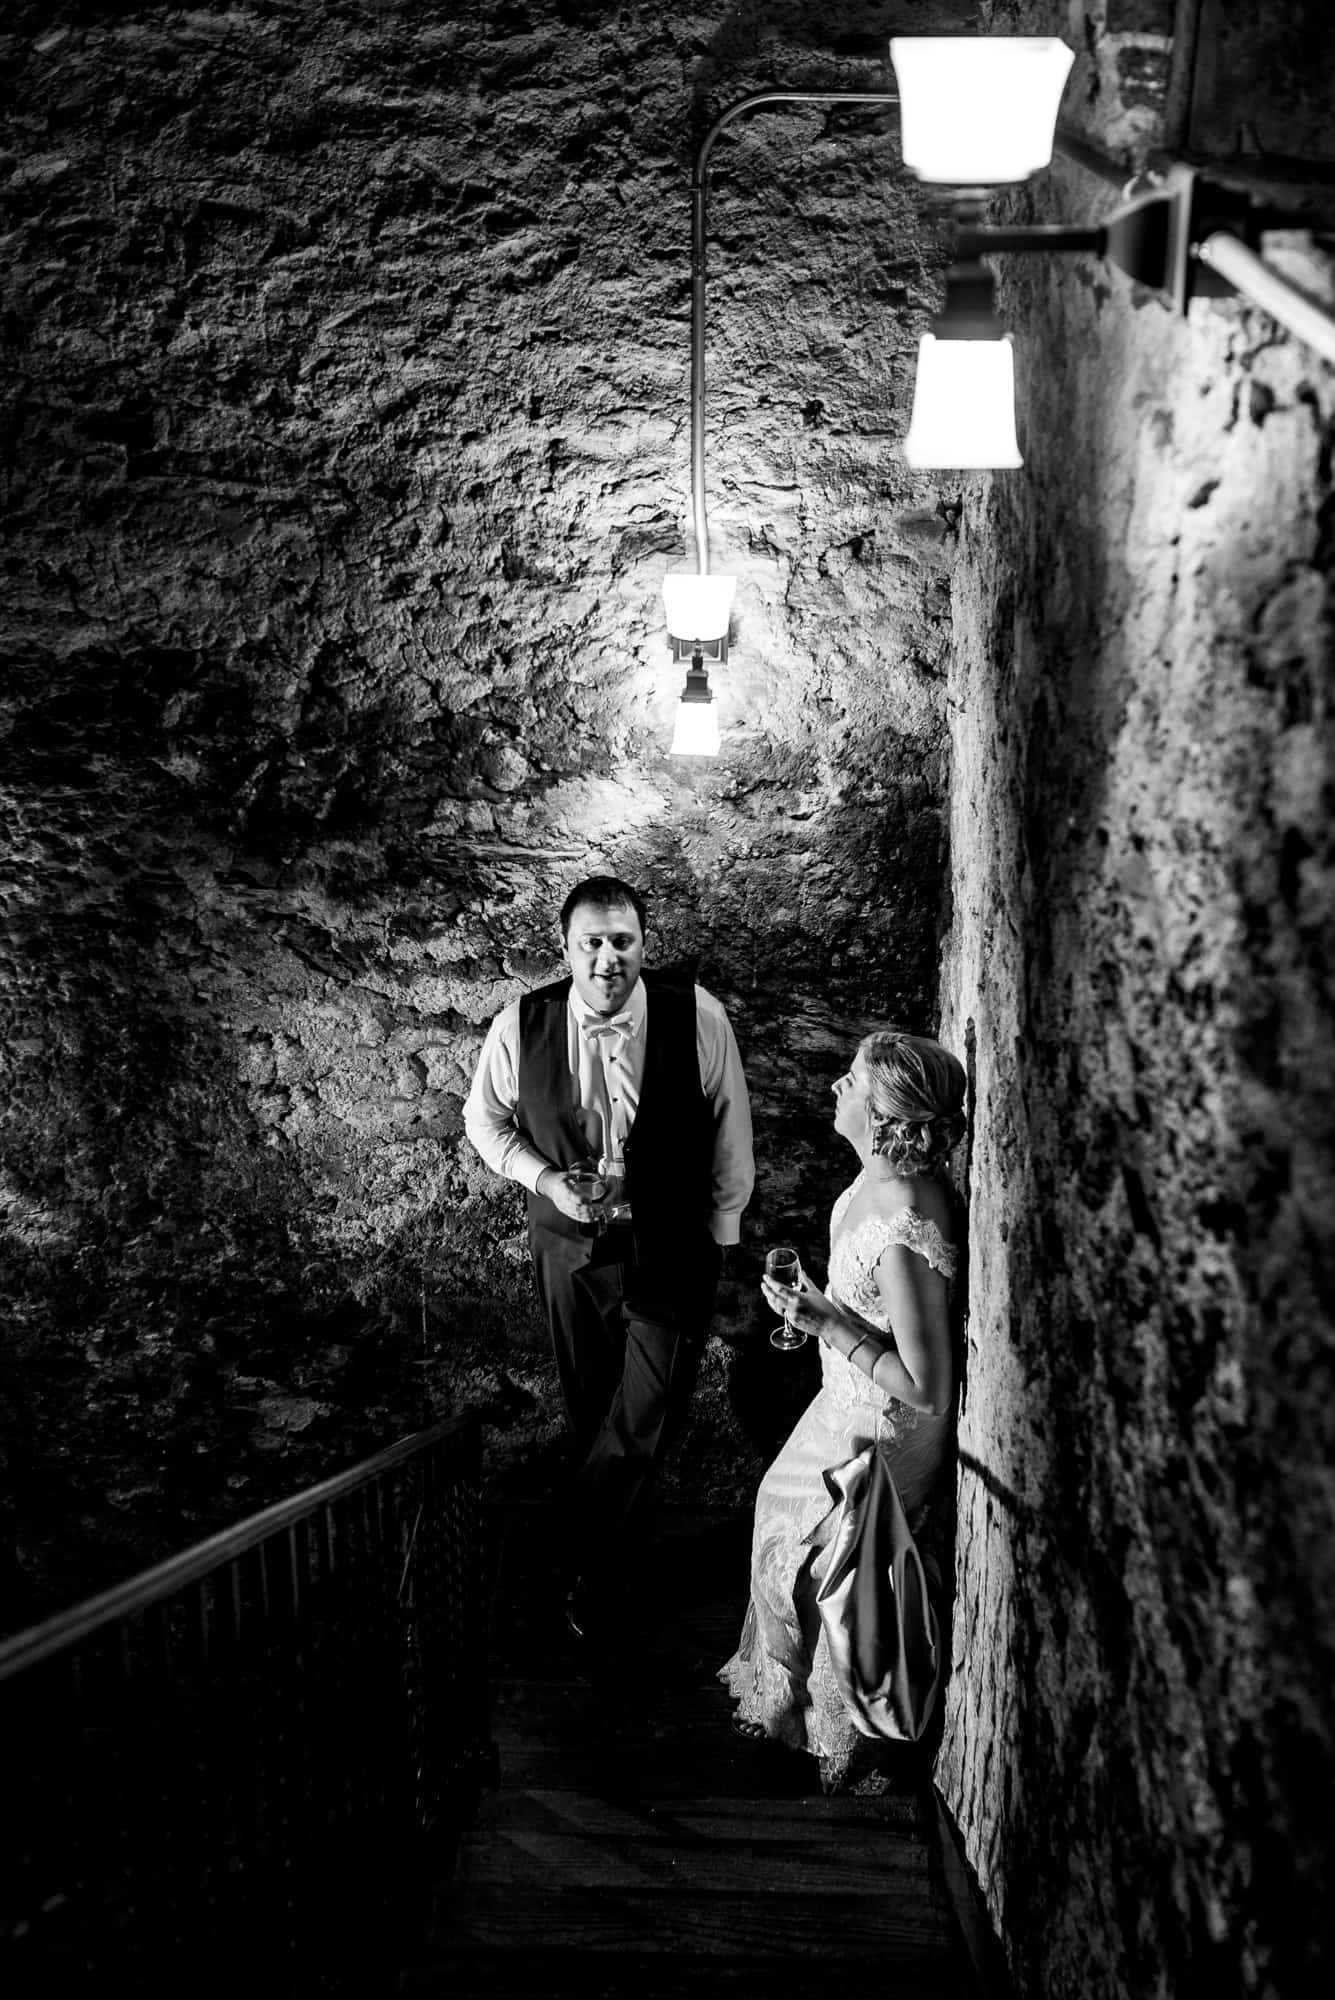 wedding day, bride and groom talking in cellar while holding glasses of wine